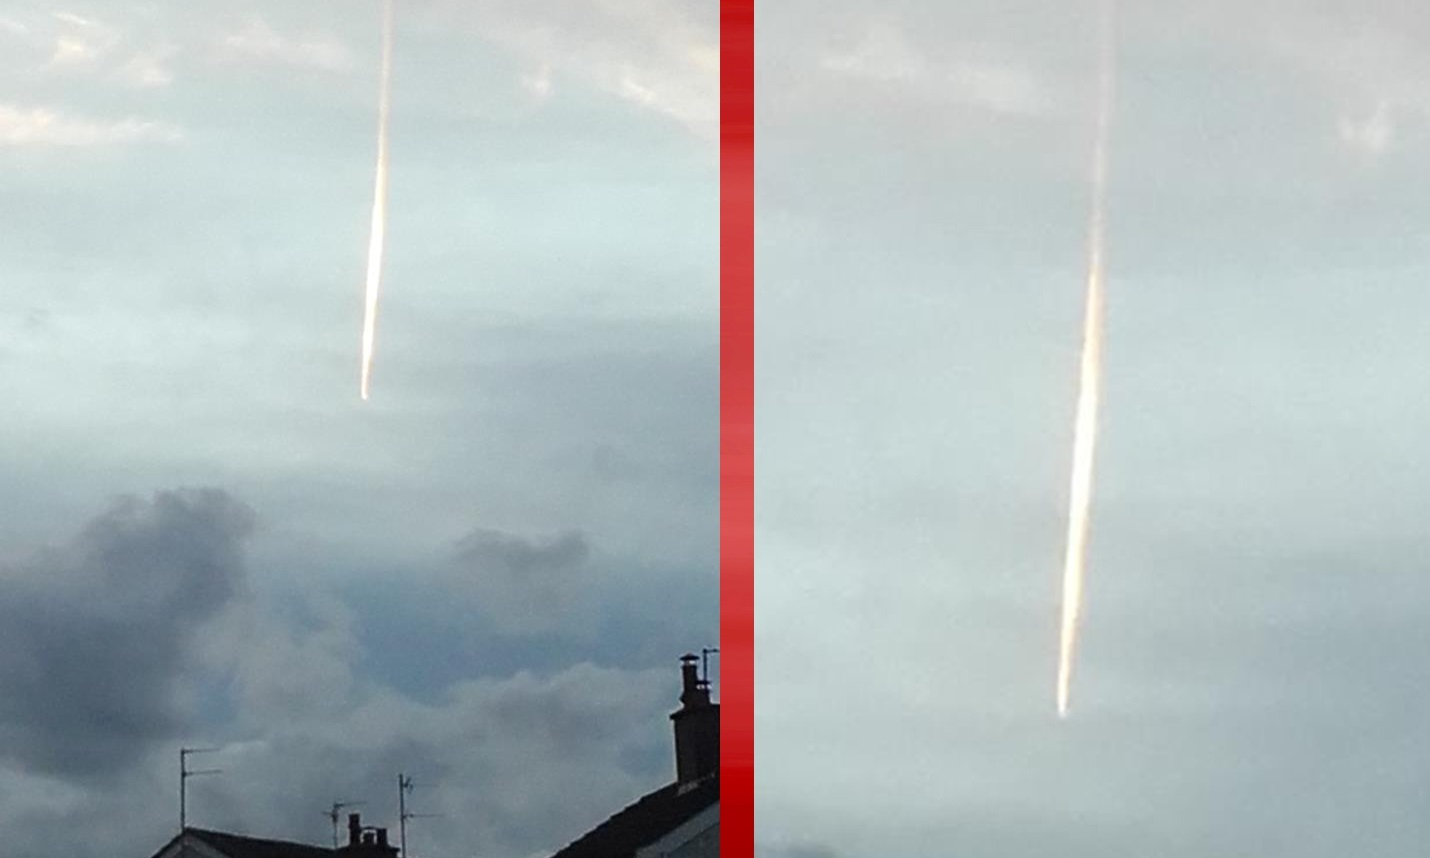 Images sent to the Tele show a mysterious bright line in the sky